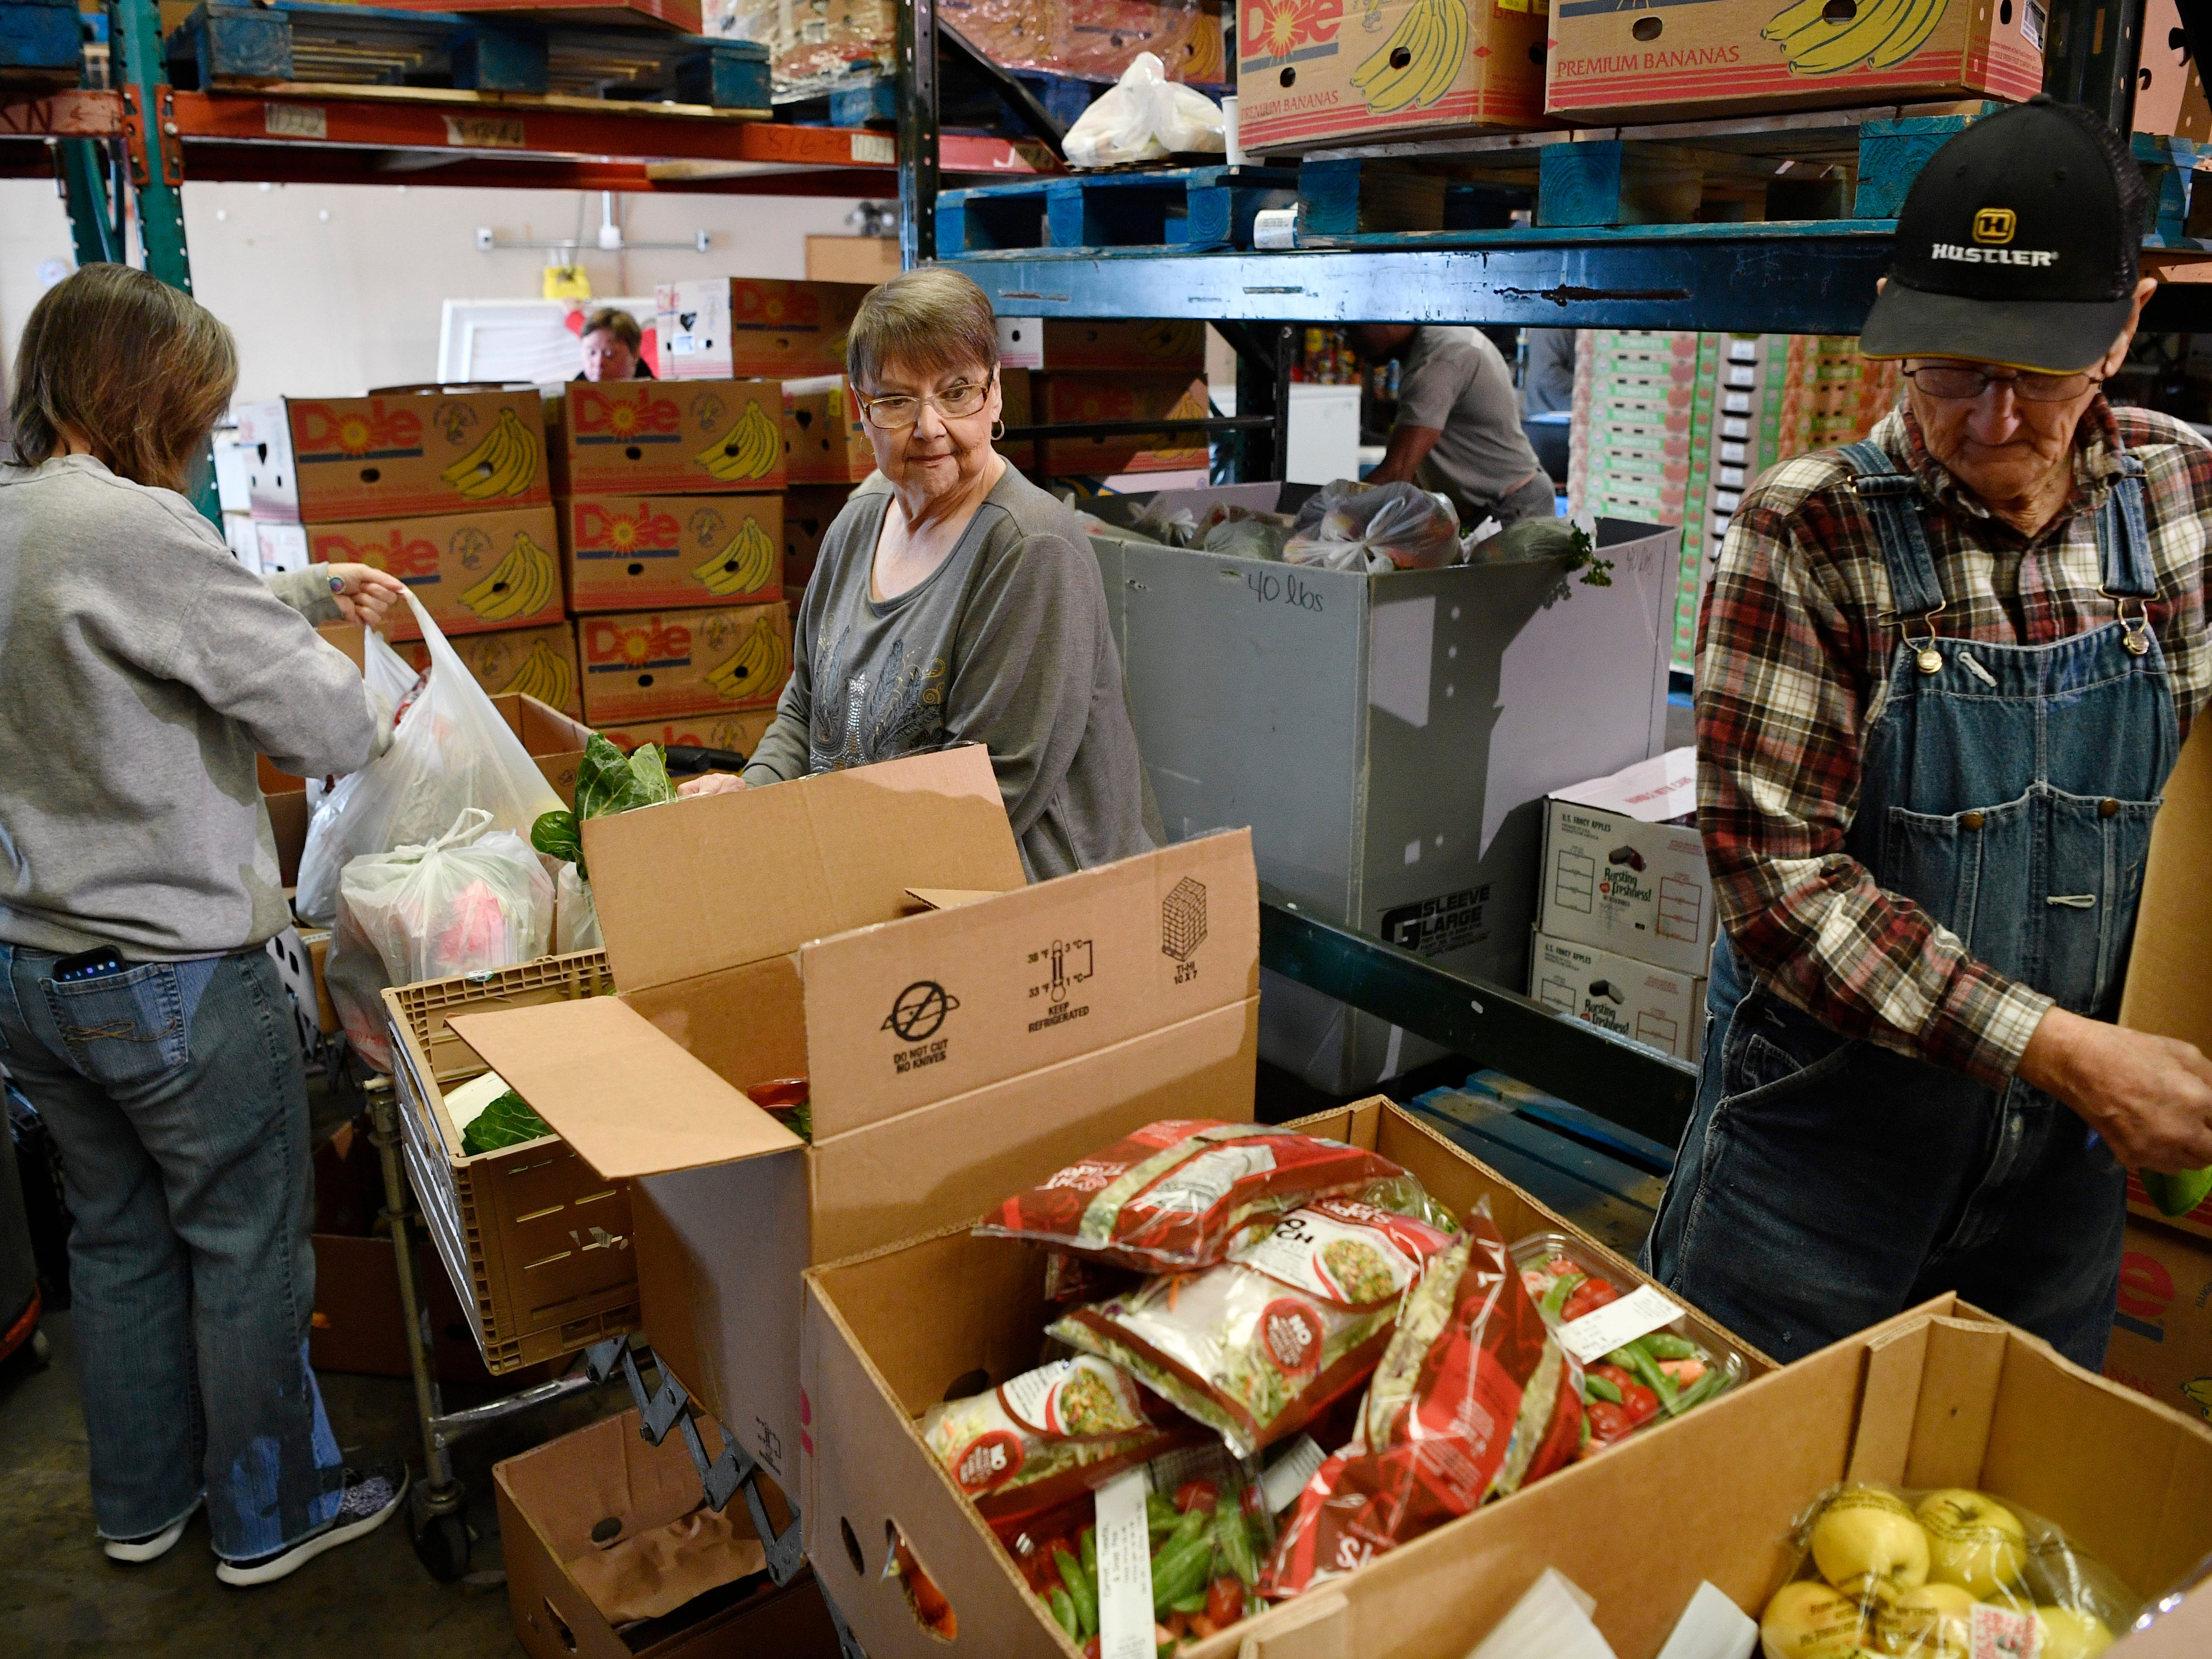 Mary Goodwin, Dawn Spicer and Kent Paschal sort fresh produce that will be given out to those in need at the Manna Cafe Monday, Jan. 28, 2019, in Clarksville, Tenn.